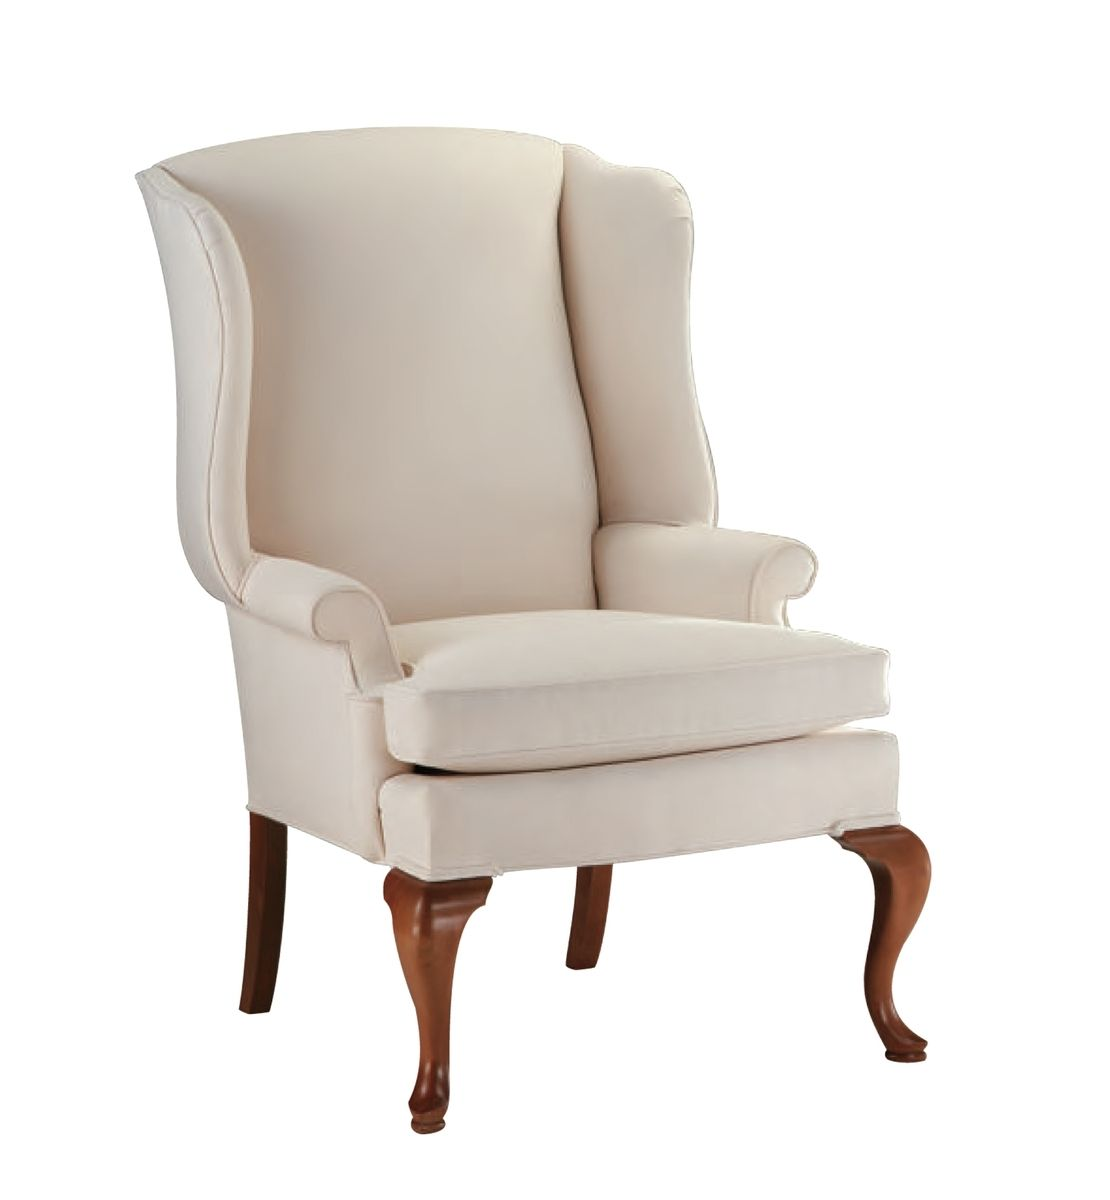 Unique Upholstered Chairs: Custom Upholstered Wingback Chair By Oak And Velvet